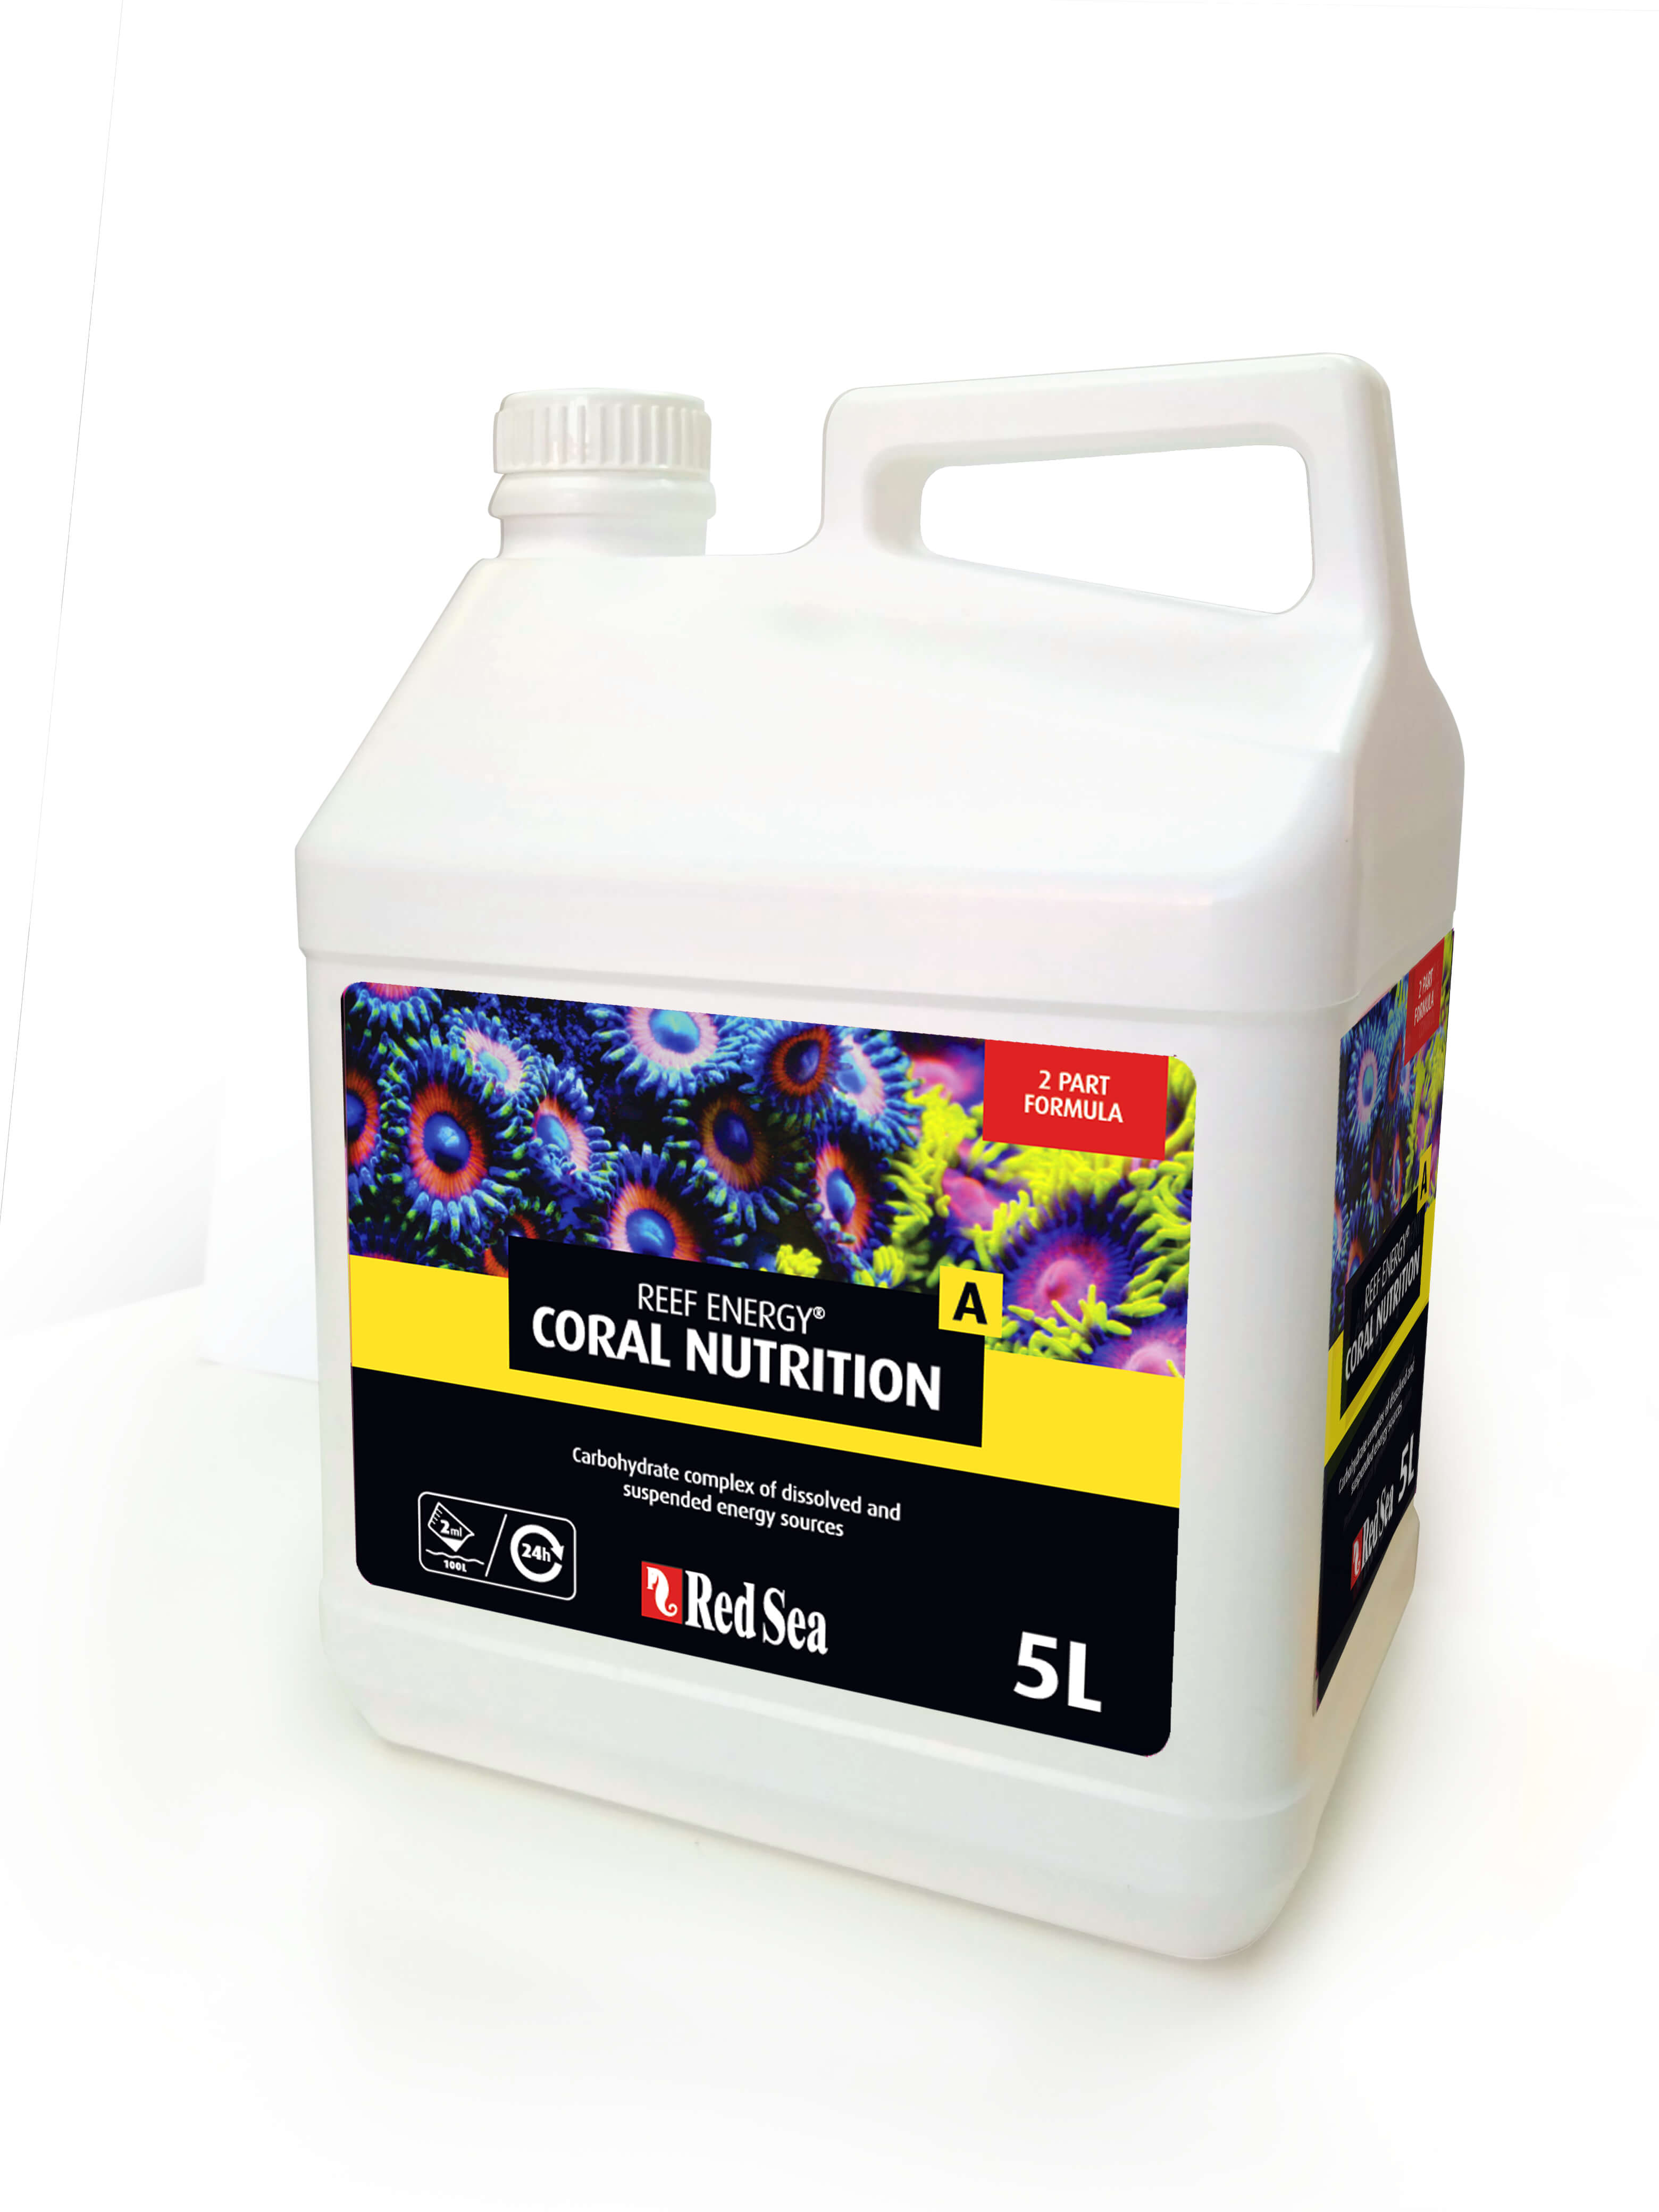 Reef Energy A - 5L